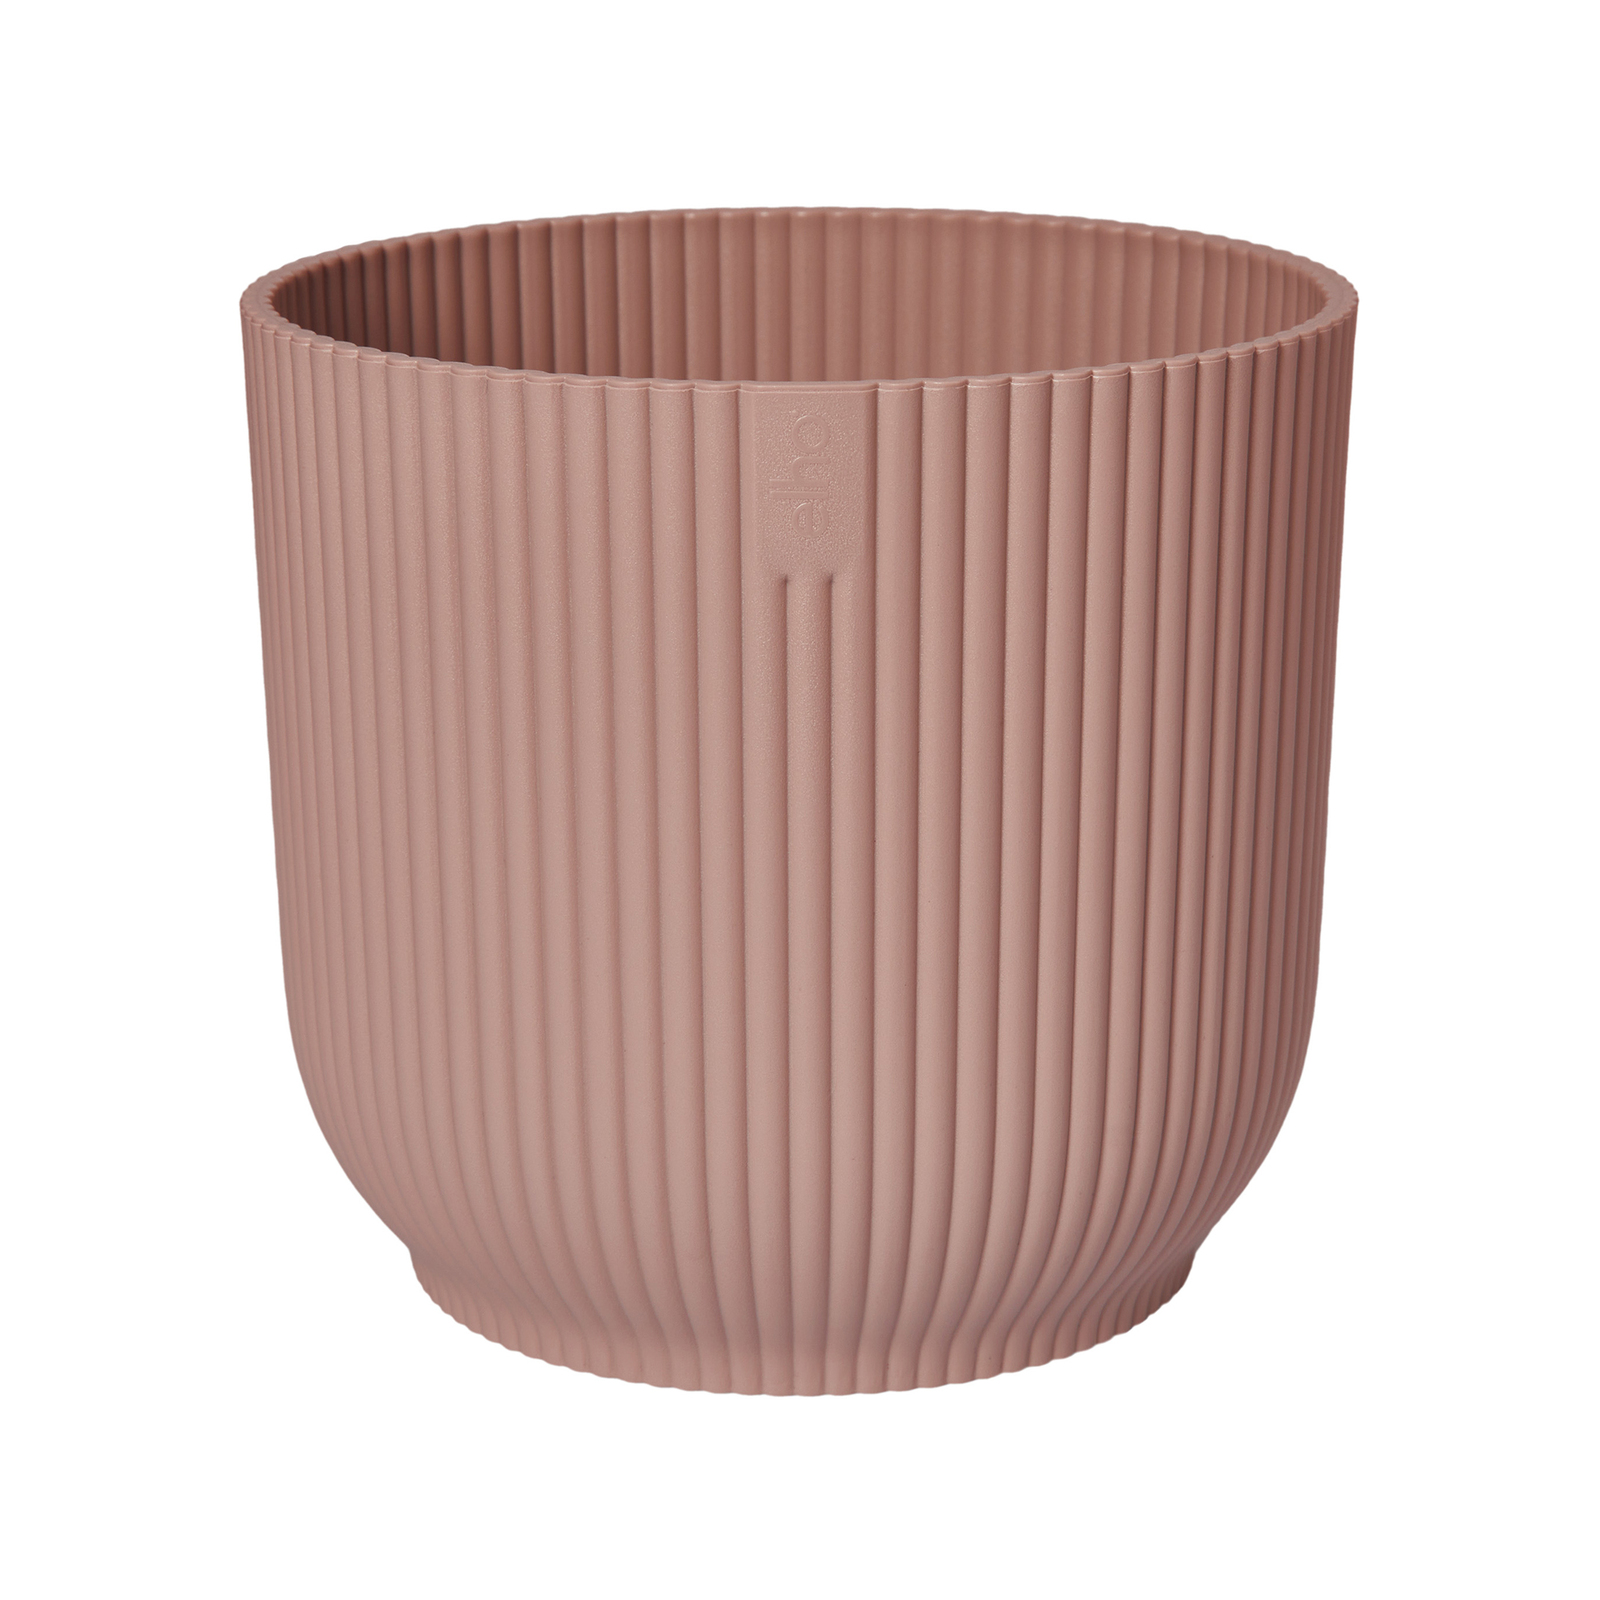 Elho 22cm Delicate Pink Vibes Round Recycled Plastic Pot